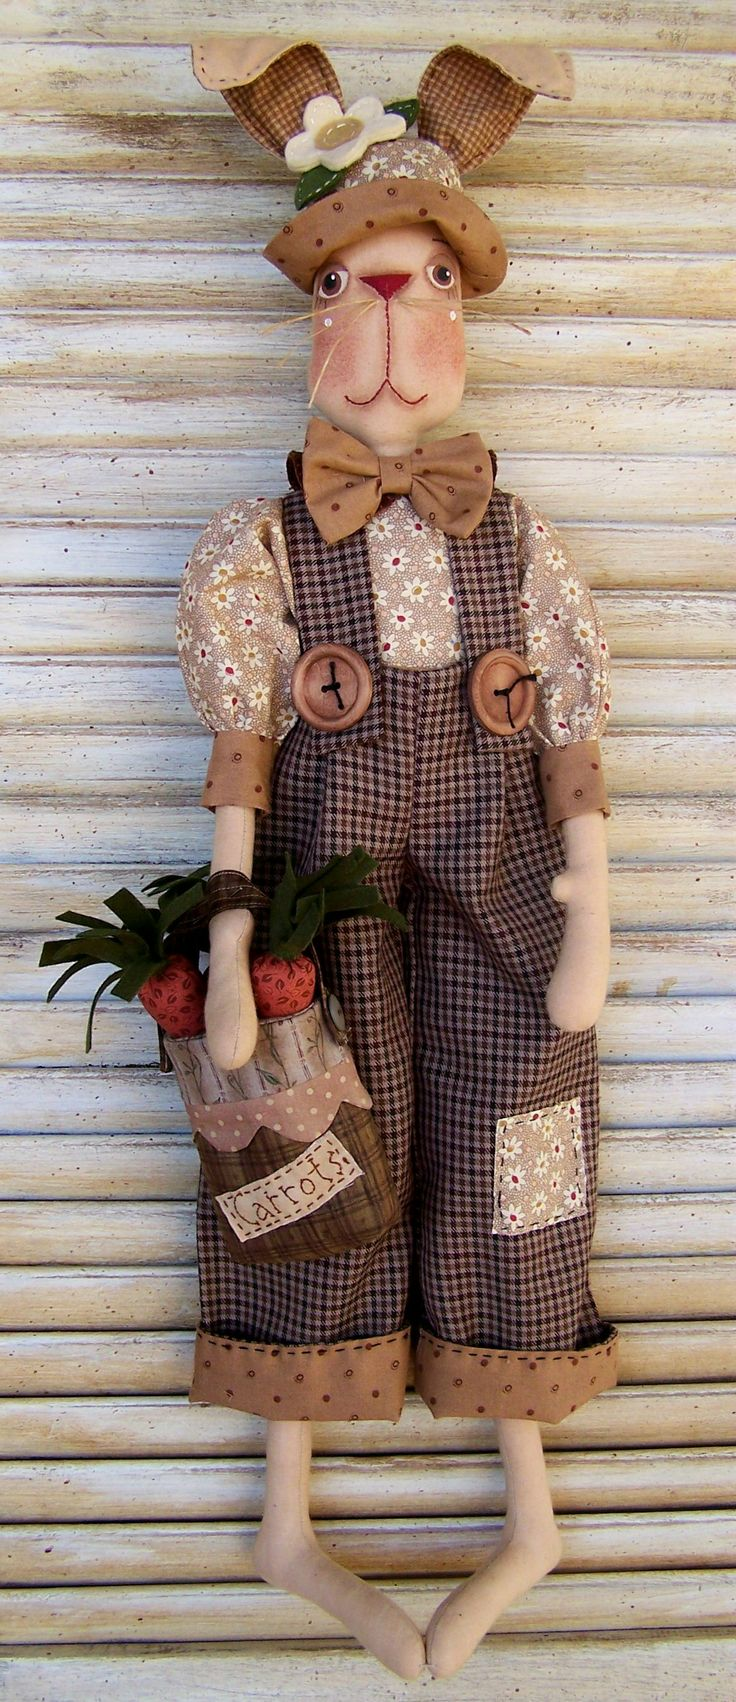 Crawford pattern by Annie Smith, Country Keepsake Dolls. Love how they have dressed this cute rabbit!!